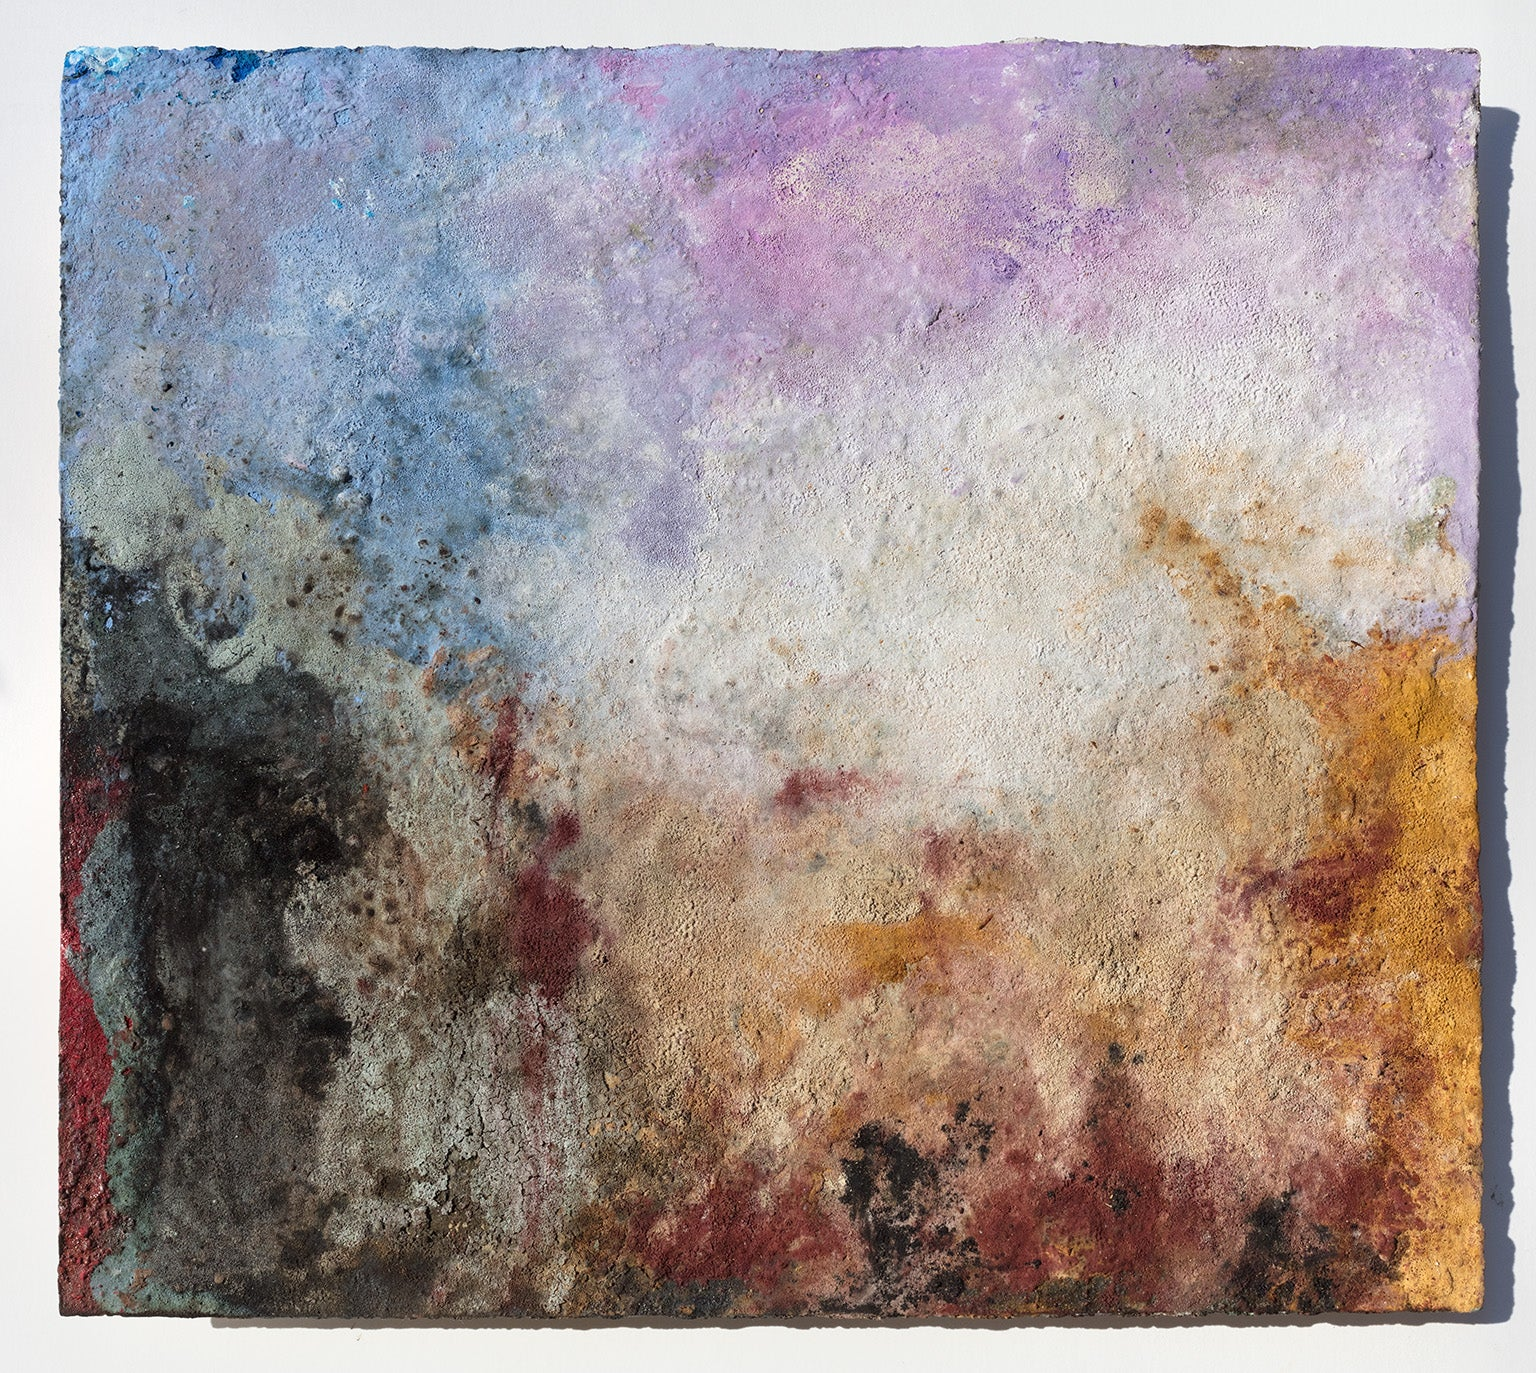 Terra Bruciata (Scorched Earth) #57 - Small Purple and Blue Abstract Landscape